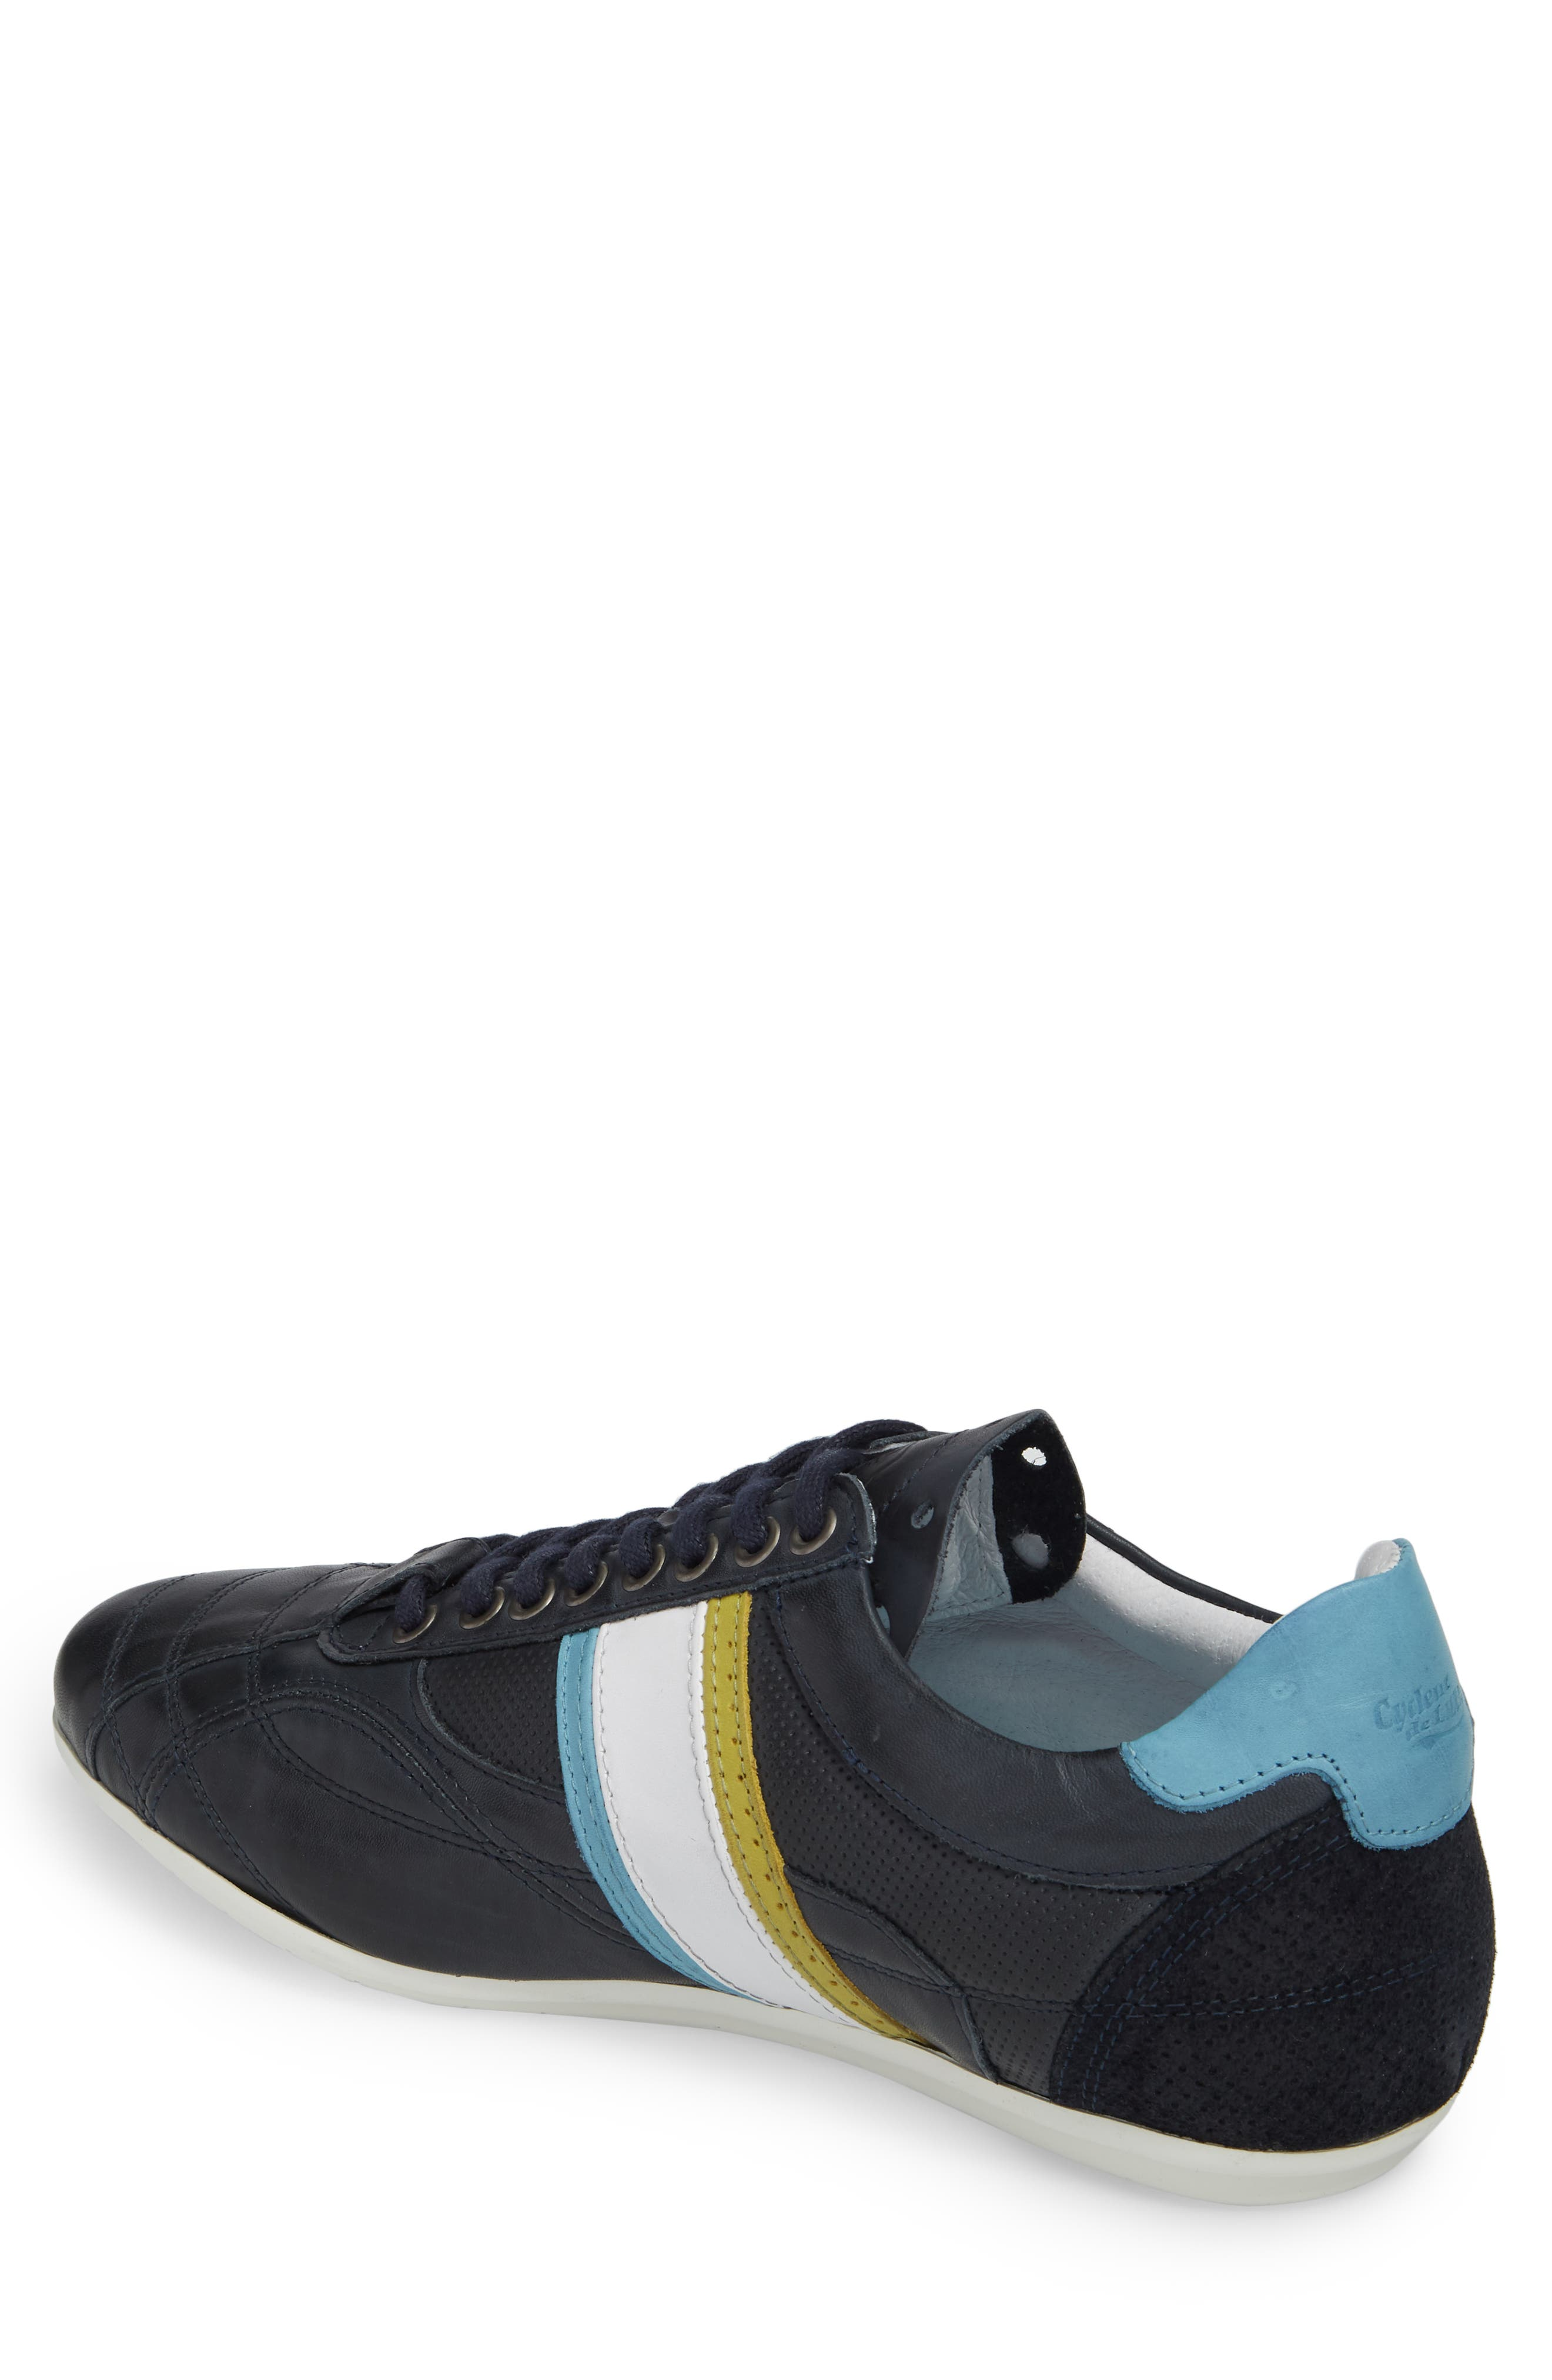 Crush City Low Top Sneaker,                             Alternate thumbnail 2, color,                             NAVY LEATHER